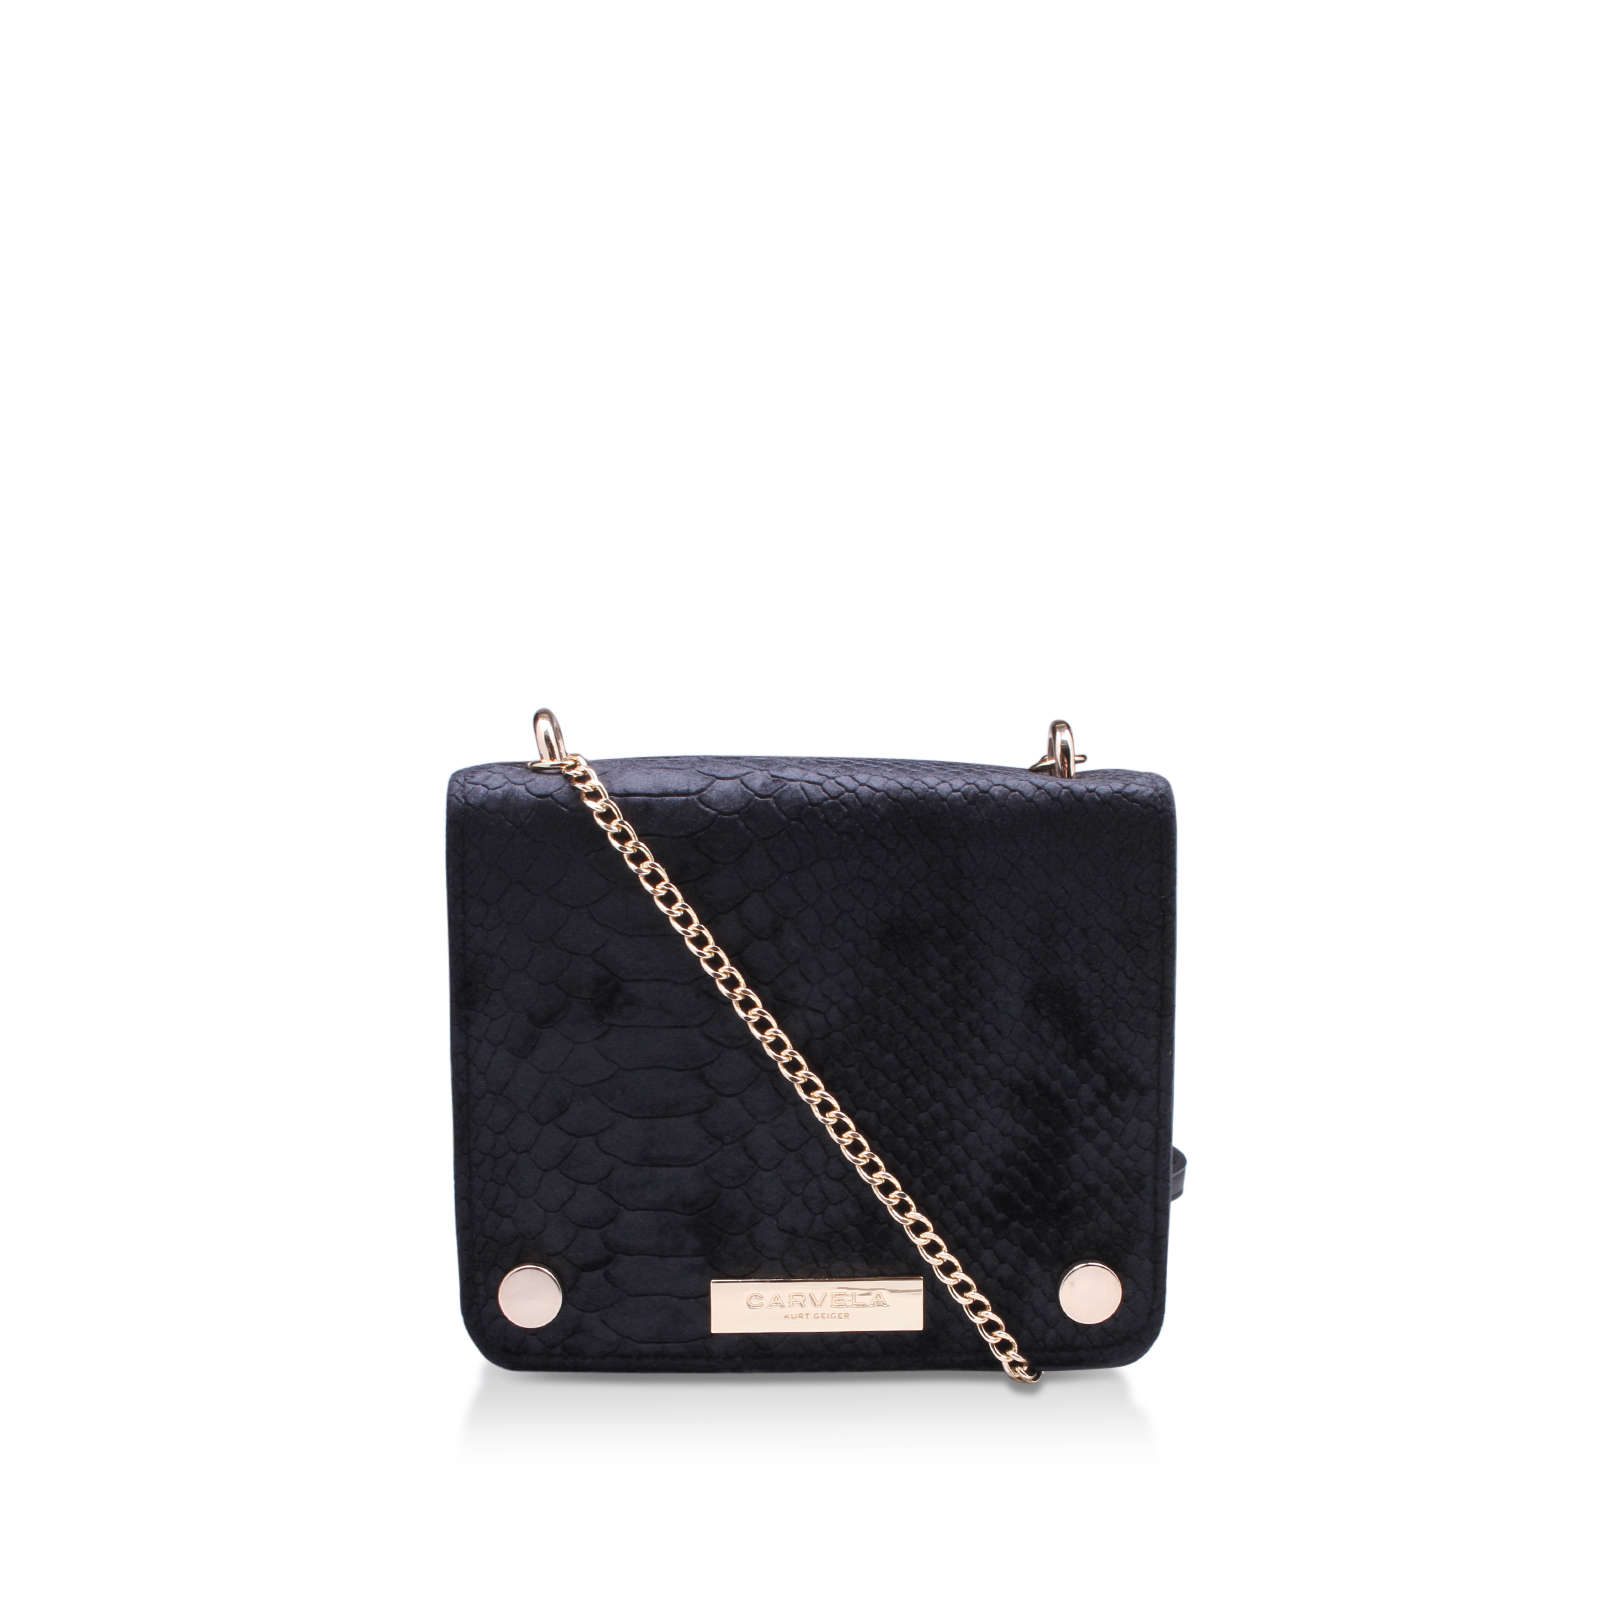 RHONDA EVENING BOX BAG Carvela rhonda evening box bag ...